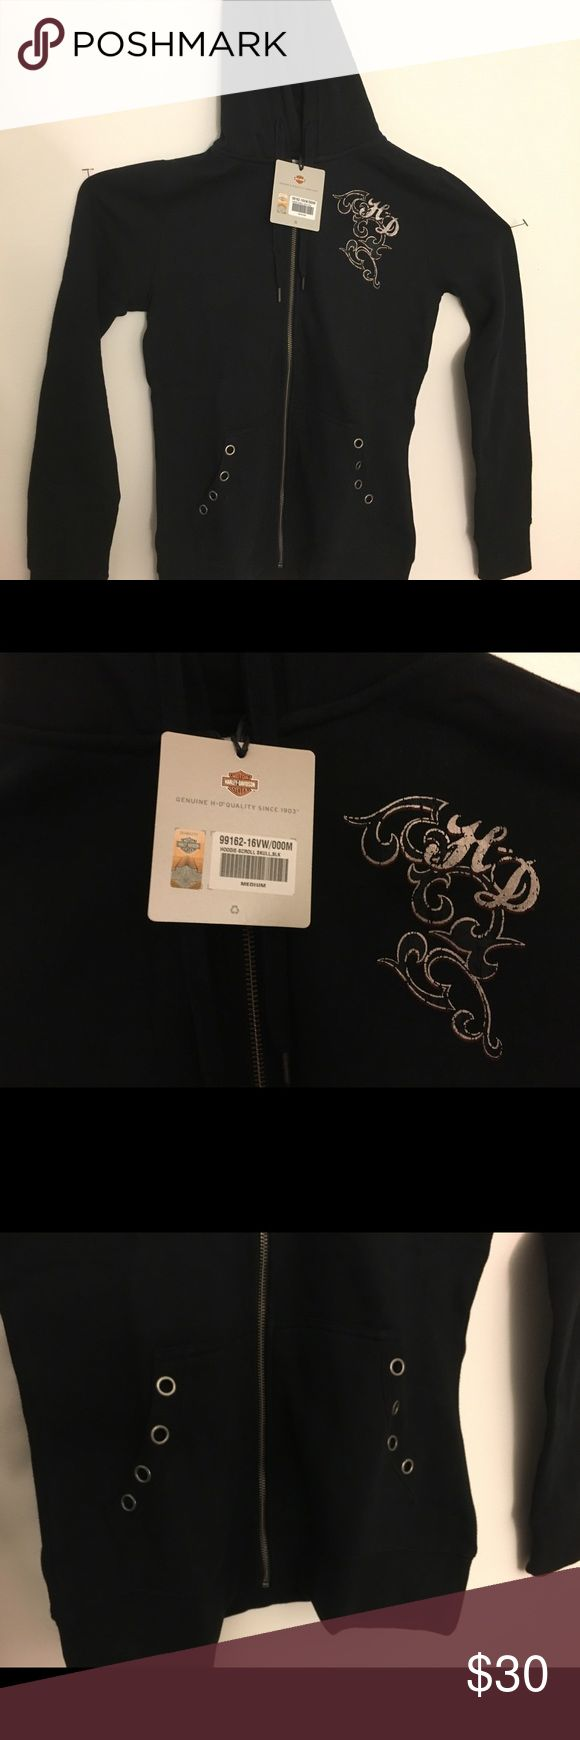 Brand New Harley-Davidson® Women's  Hoodie, Black Harley-Davidson® Women's Embellished Scroll Skull Hoodie, Black 99162-16VW  Made of 60% cotton and 40% polyester sweatshirt fleece Zipper front with rhinestone accented pull and lined drawstring hood Rib-knit cuffs, waist, and pocket trim Kangaroo-style pockets.  Eyelets on pocket trim Printed metallic graphics on left chest and back.  Printed skull graphics with mixed stud embellishment on back Harley-Davidson Tops Sweatshirts & Hoodies